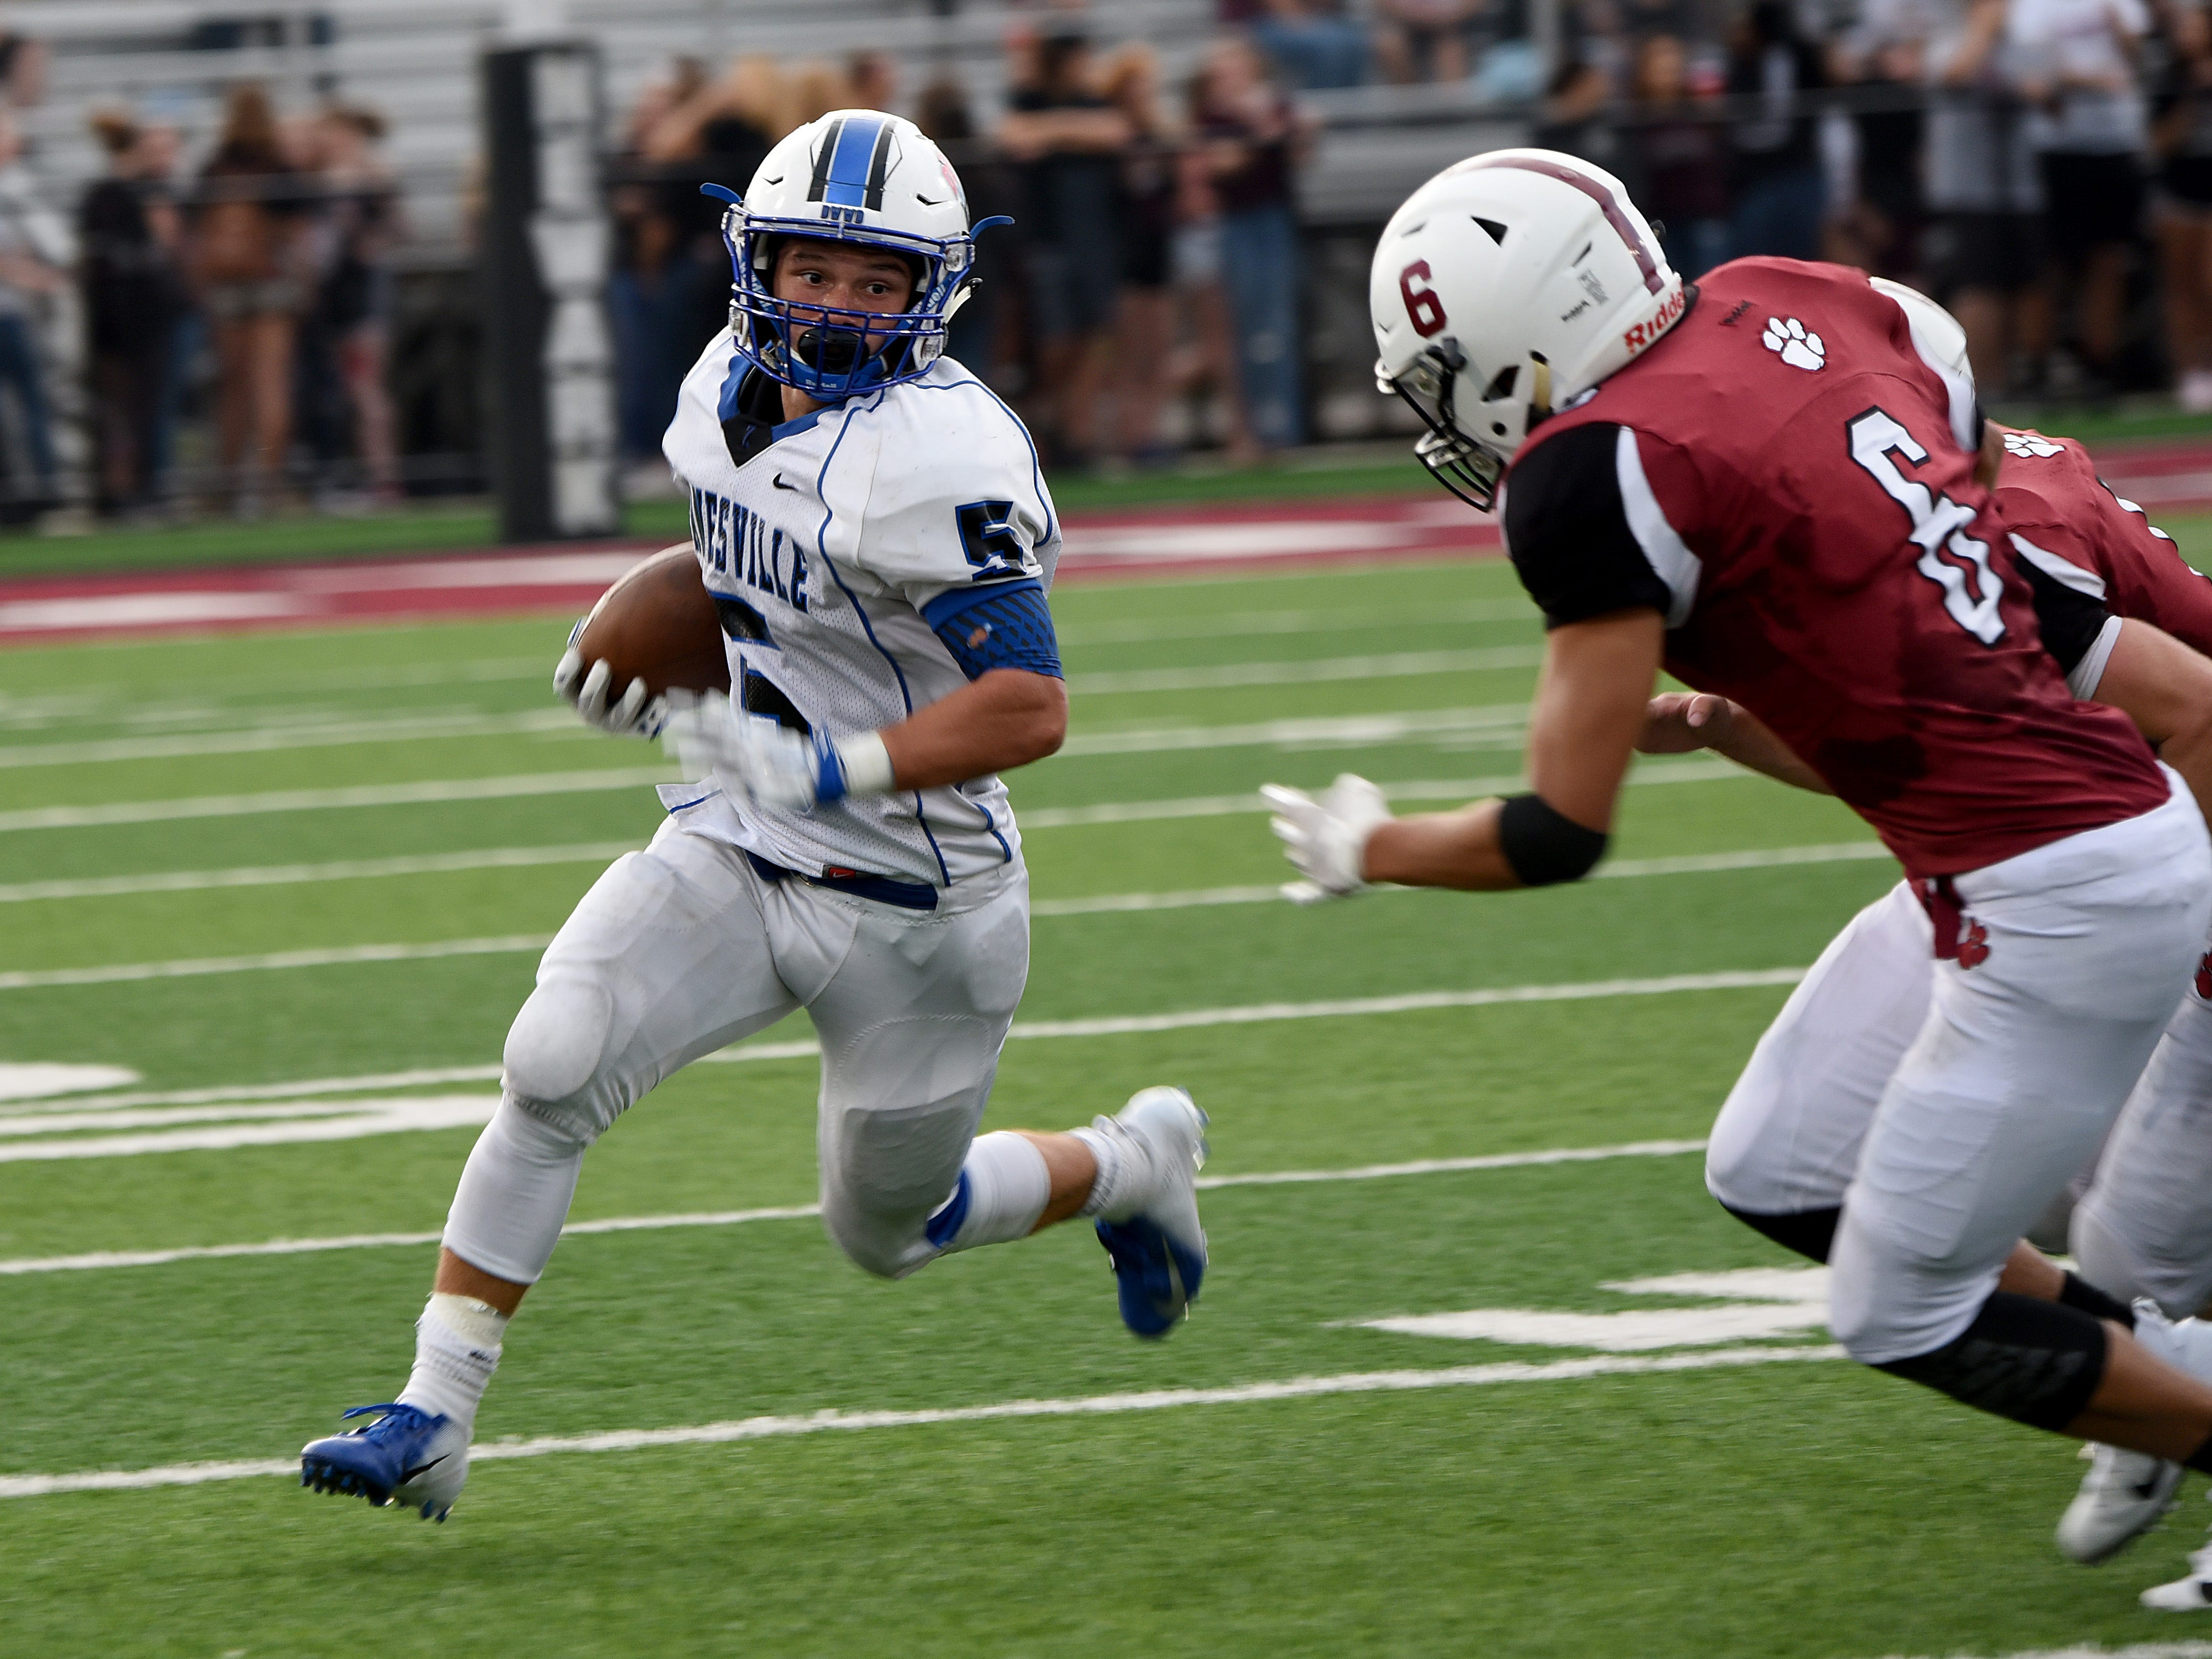 J.C. Curtis runs with the ball during Zanesville's 32-27 win against rival Newark last week. The Blue Devils will host Granville on Friday night.